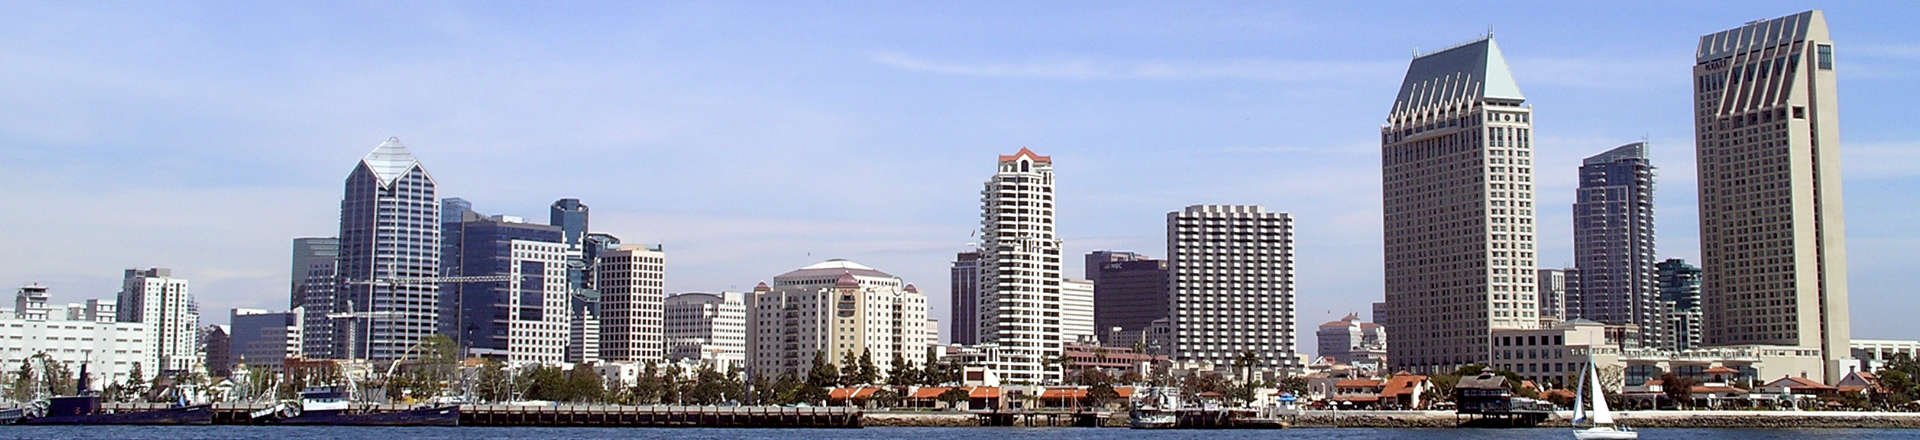 panoramic view of San Diego, CA